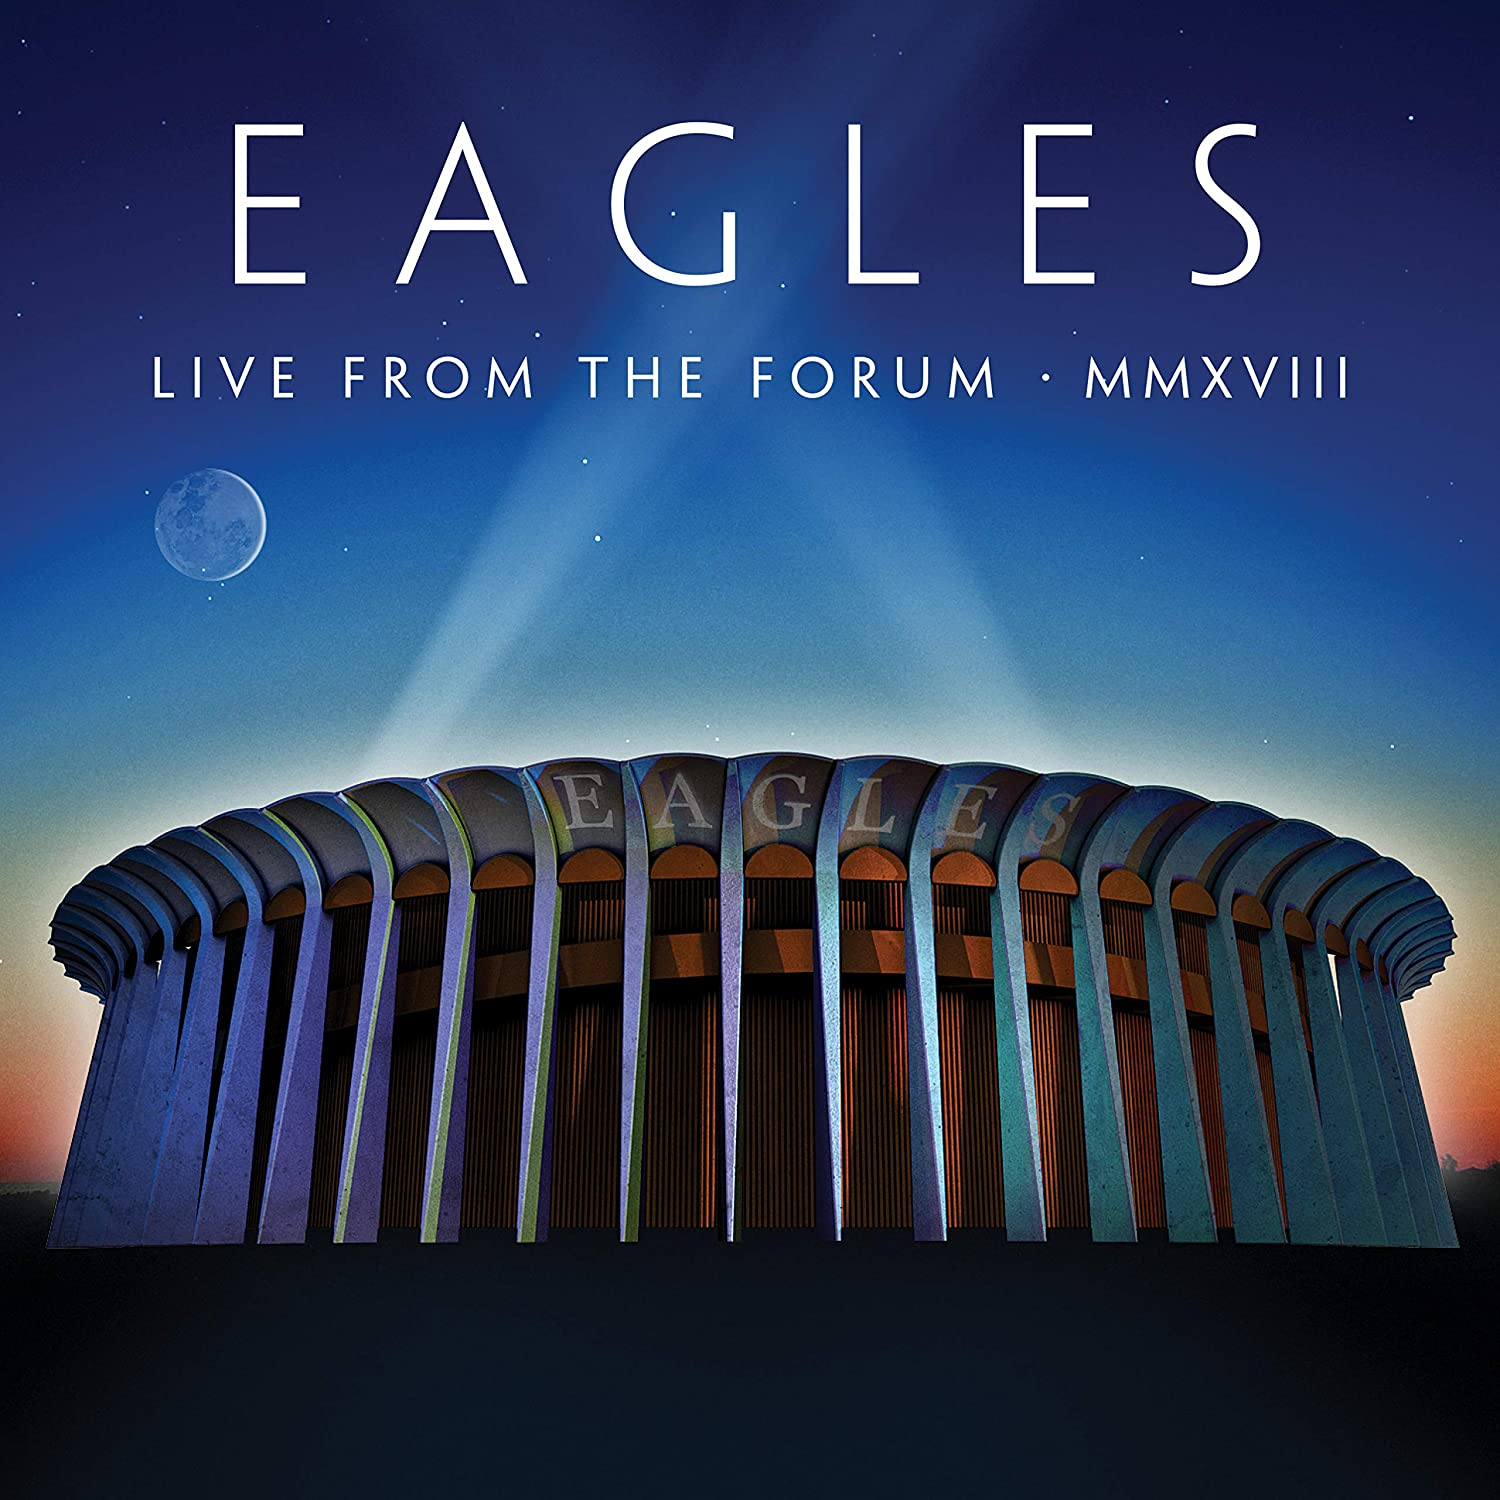 Eagles - Live From The Forum MMXVIII 180g 4LP Vinyl Record Box Set + 8-page book